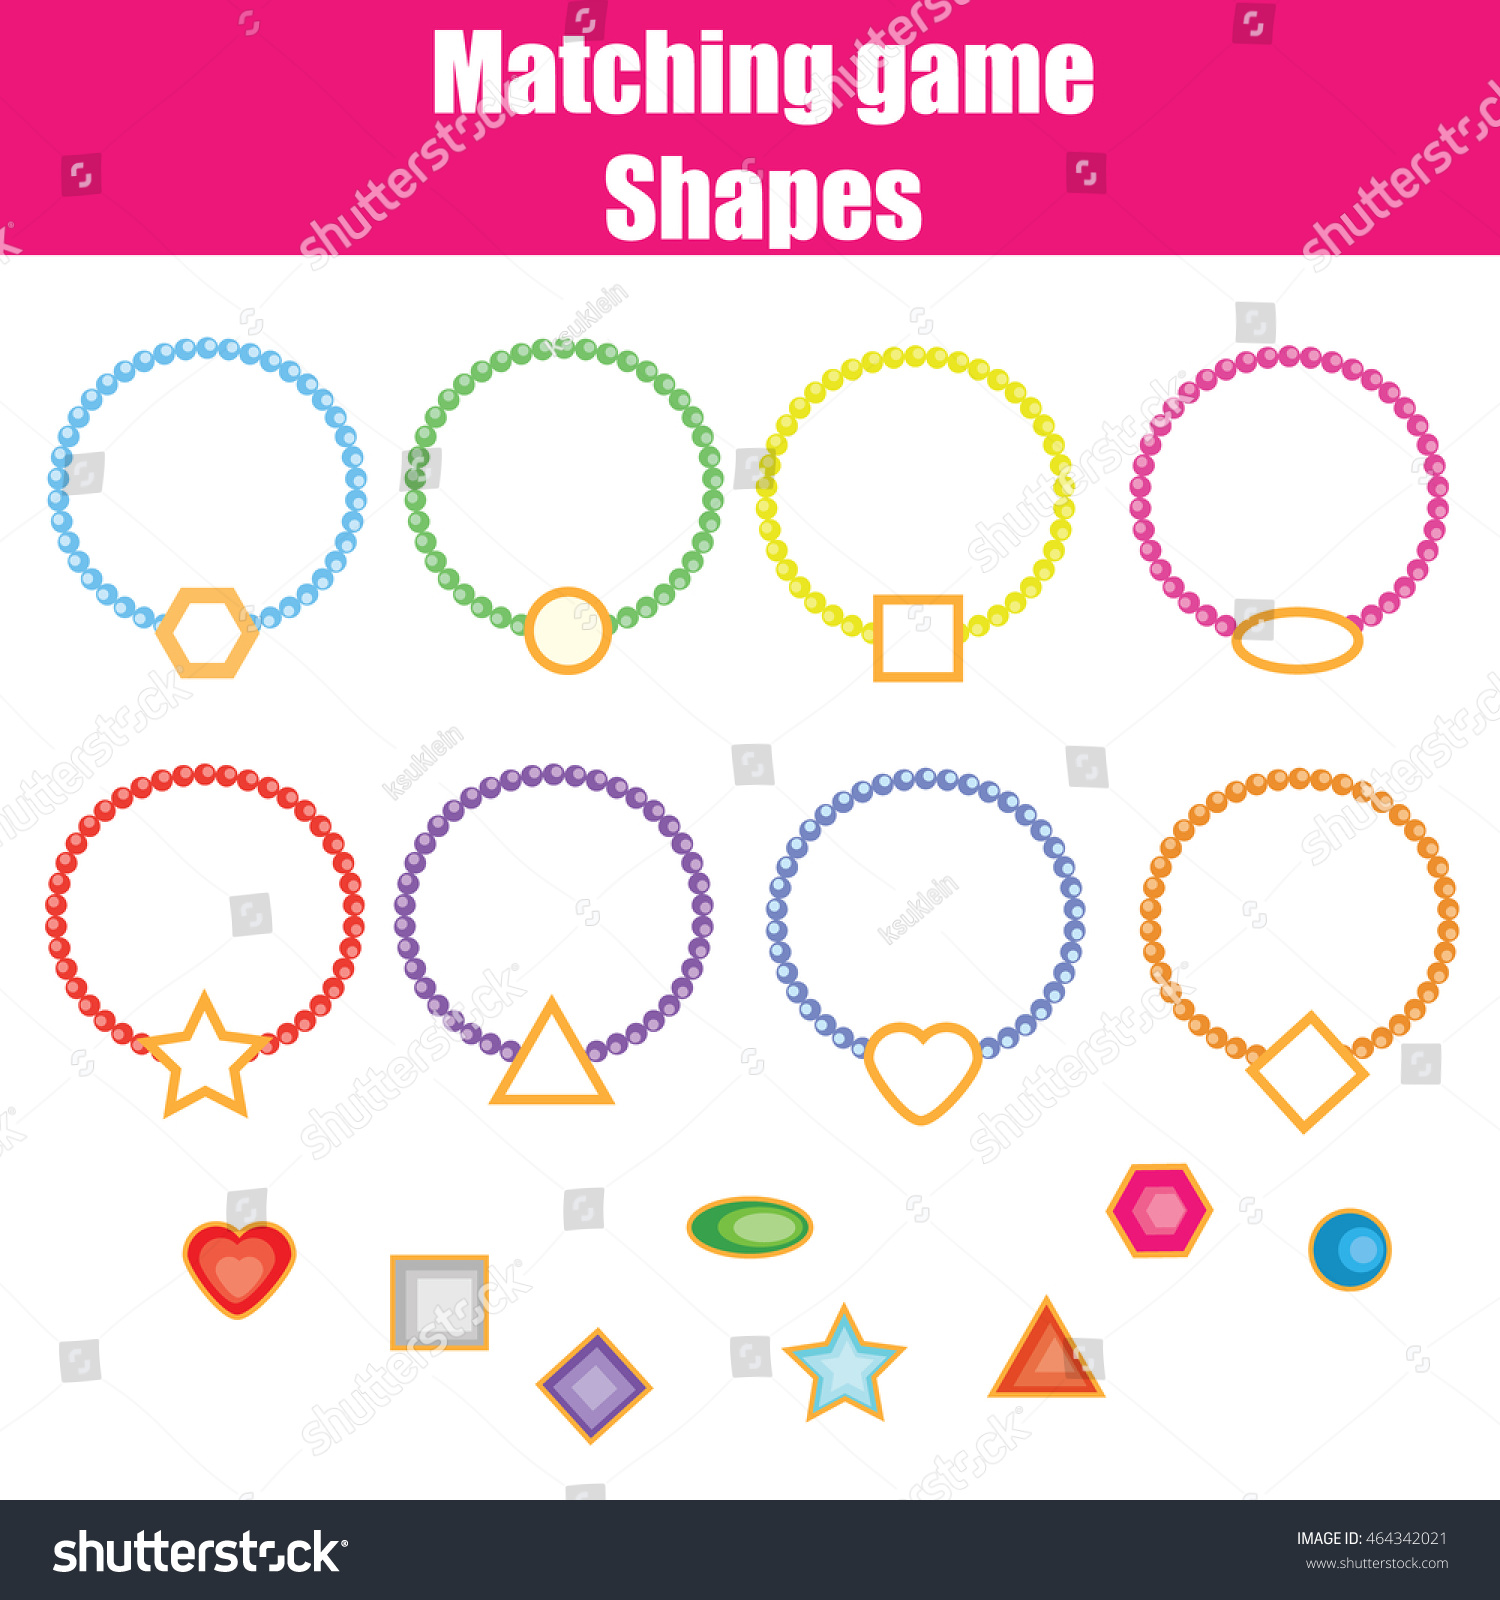 Preschool Shapes Worksheet Match